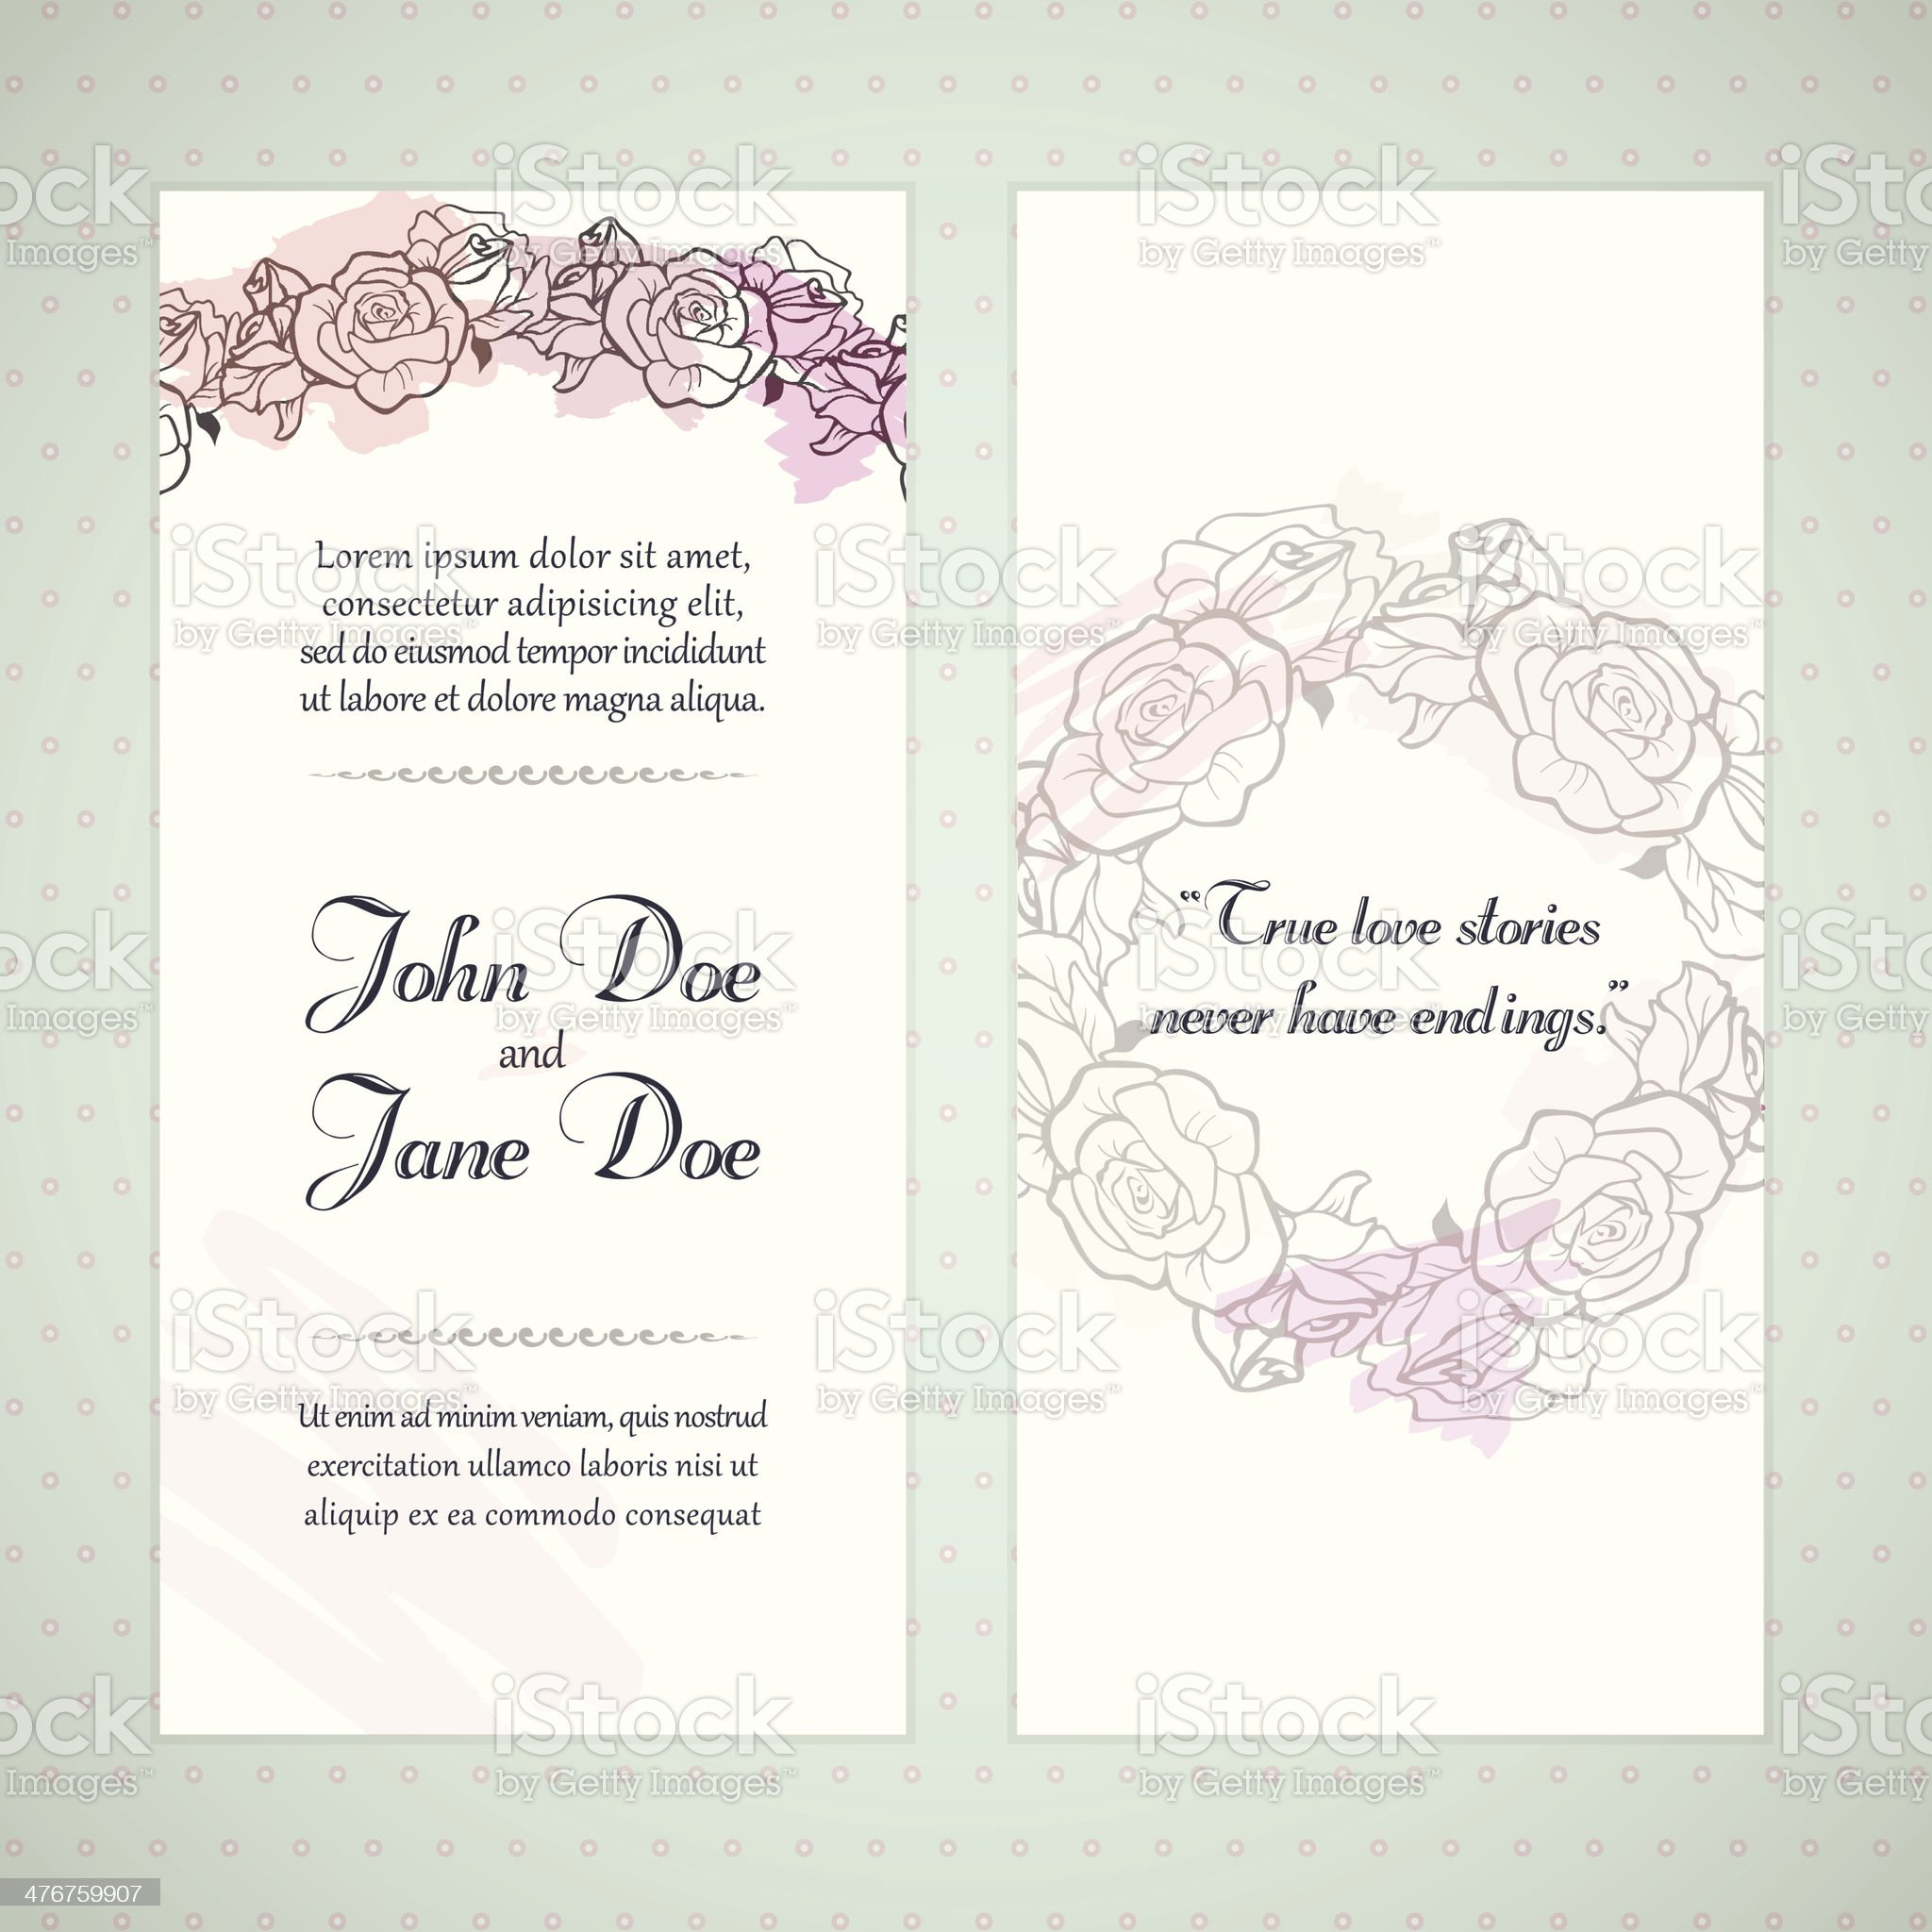 Floral invitation cards royalty-free stock vector art